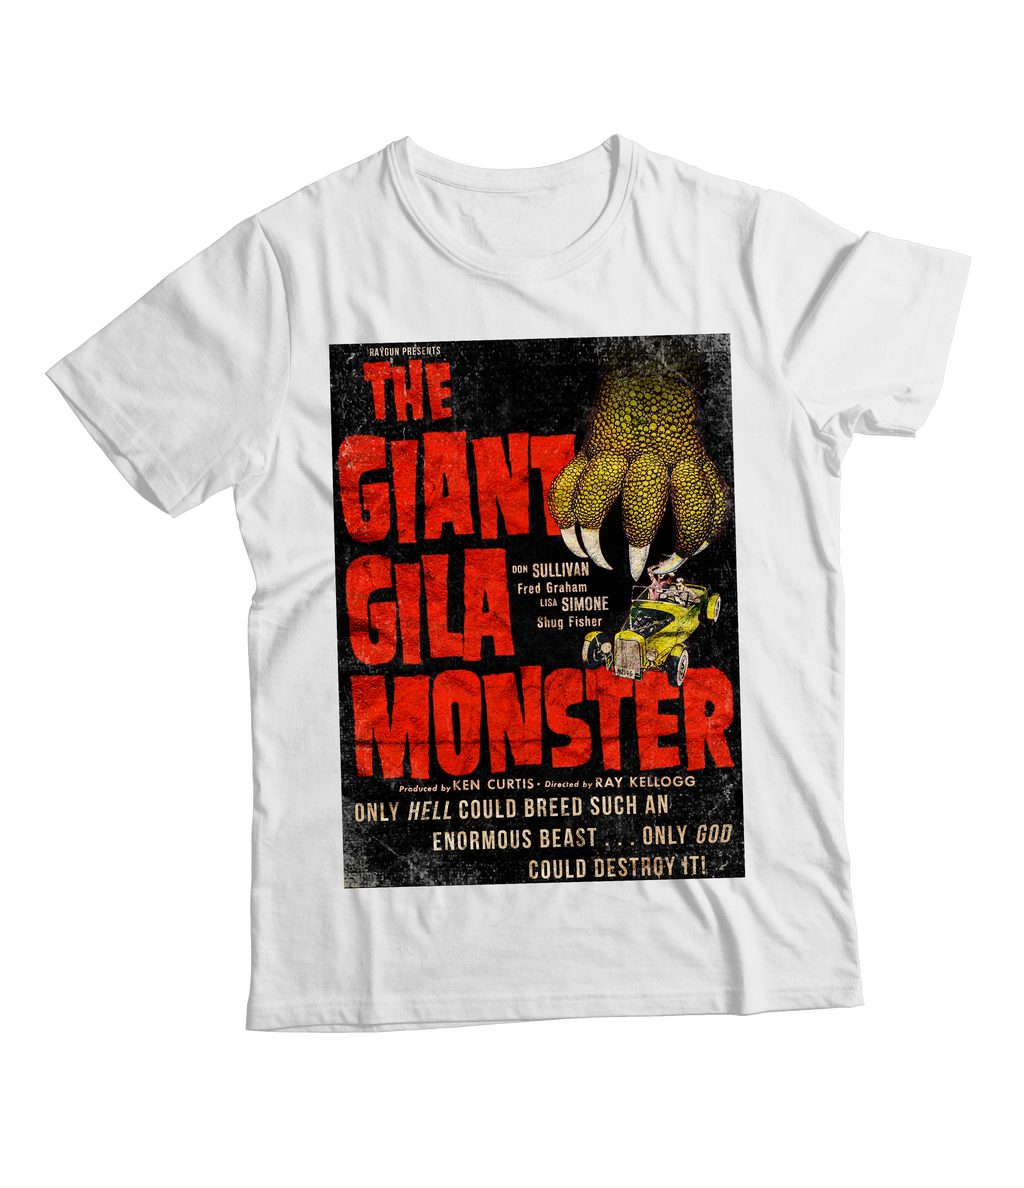 RAYGUN Giant Gila Monster Vintage Distressed T-Shirt